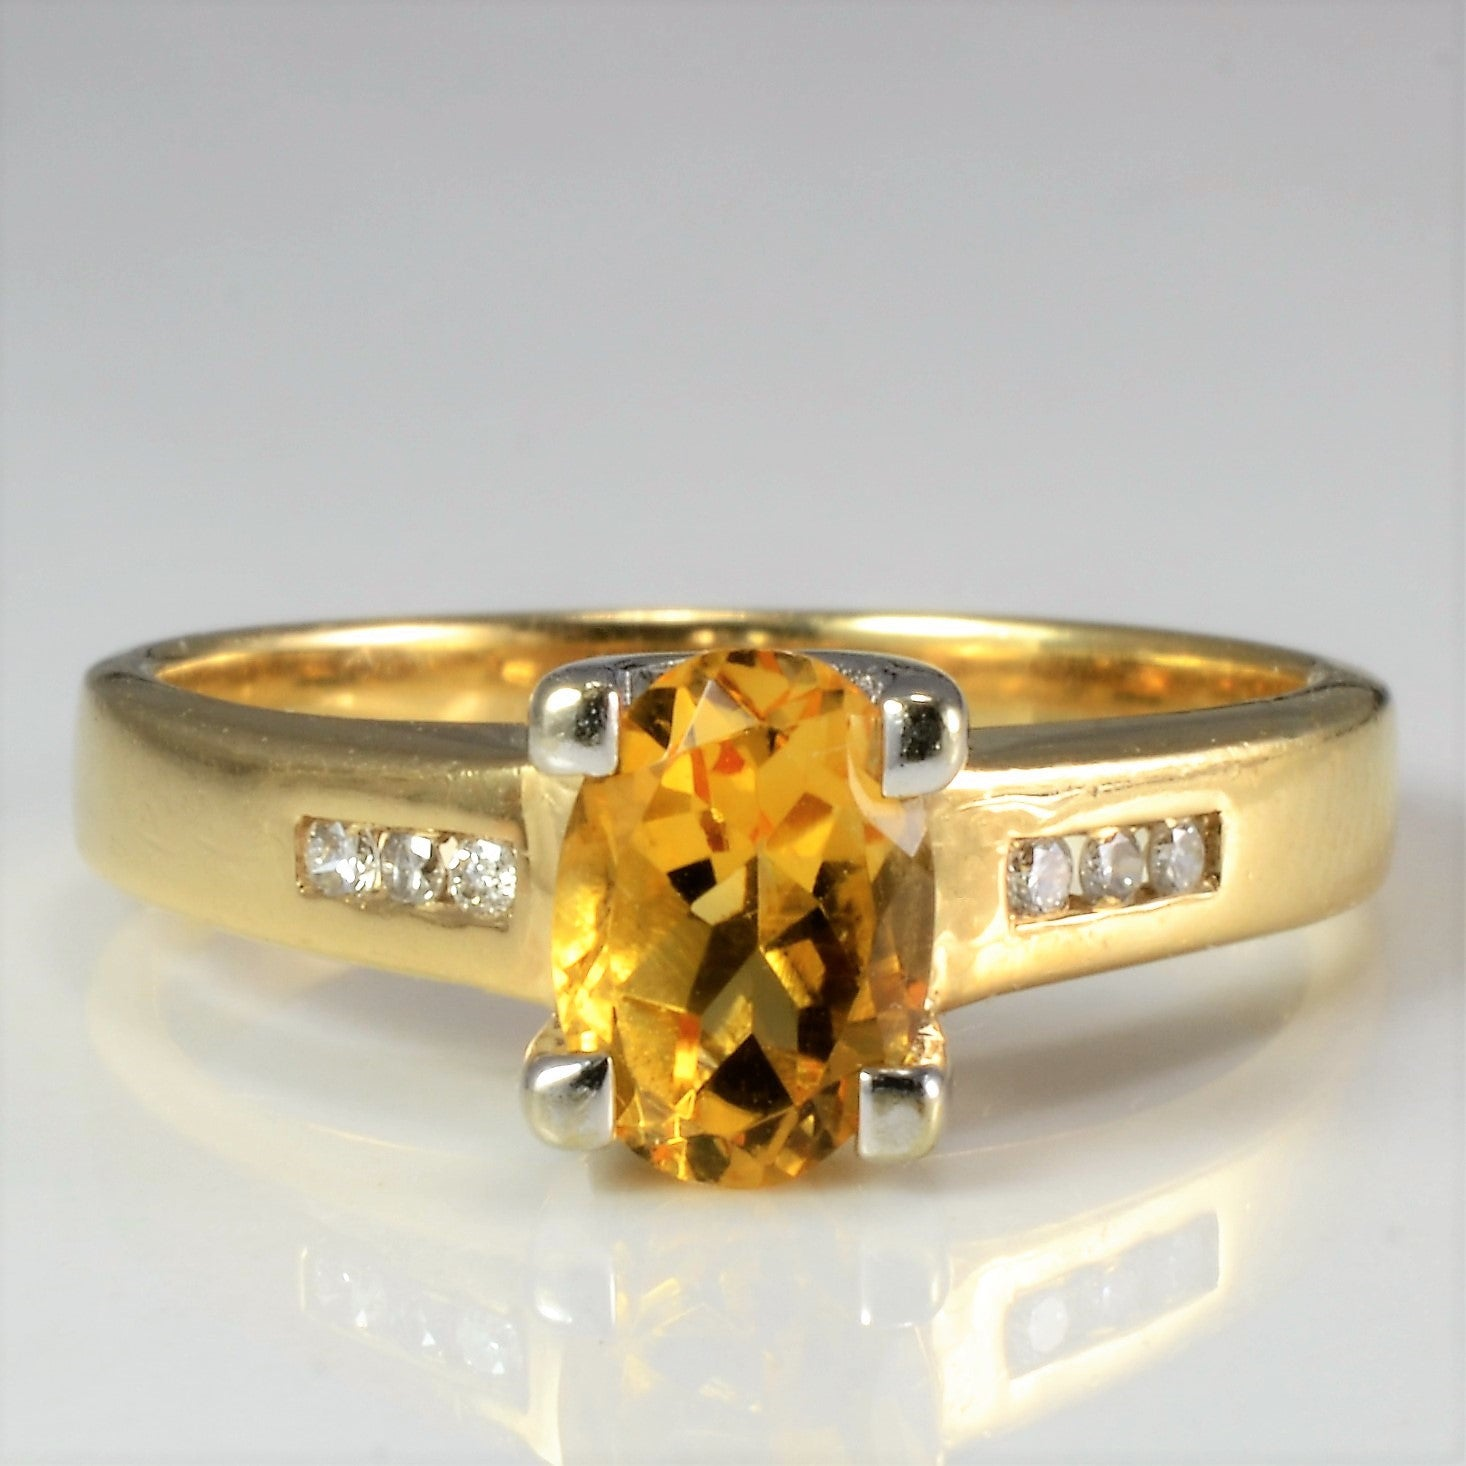 Solitaire Citrine & Accents Diamond Ring | 0.03 ctw, SZ 5.75 |